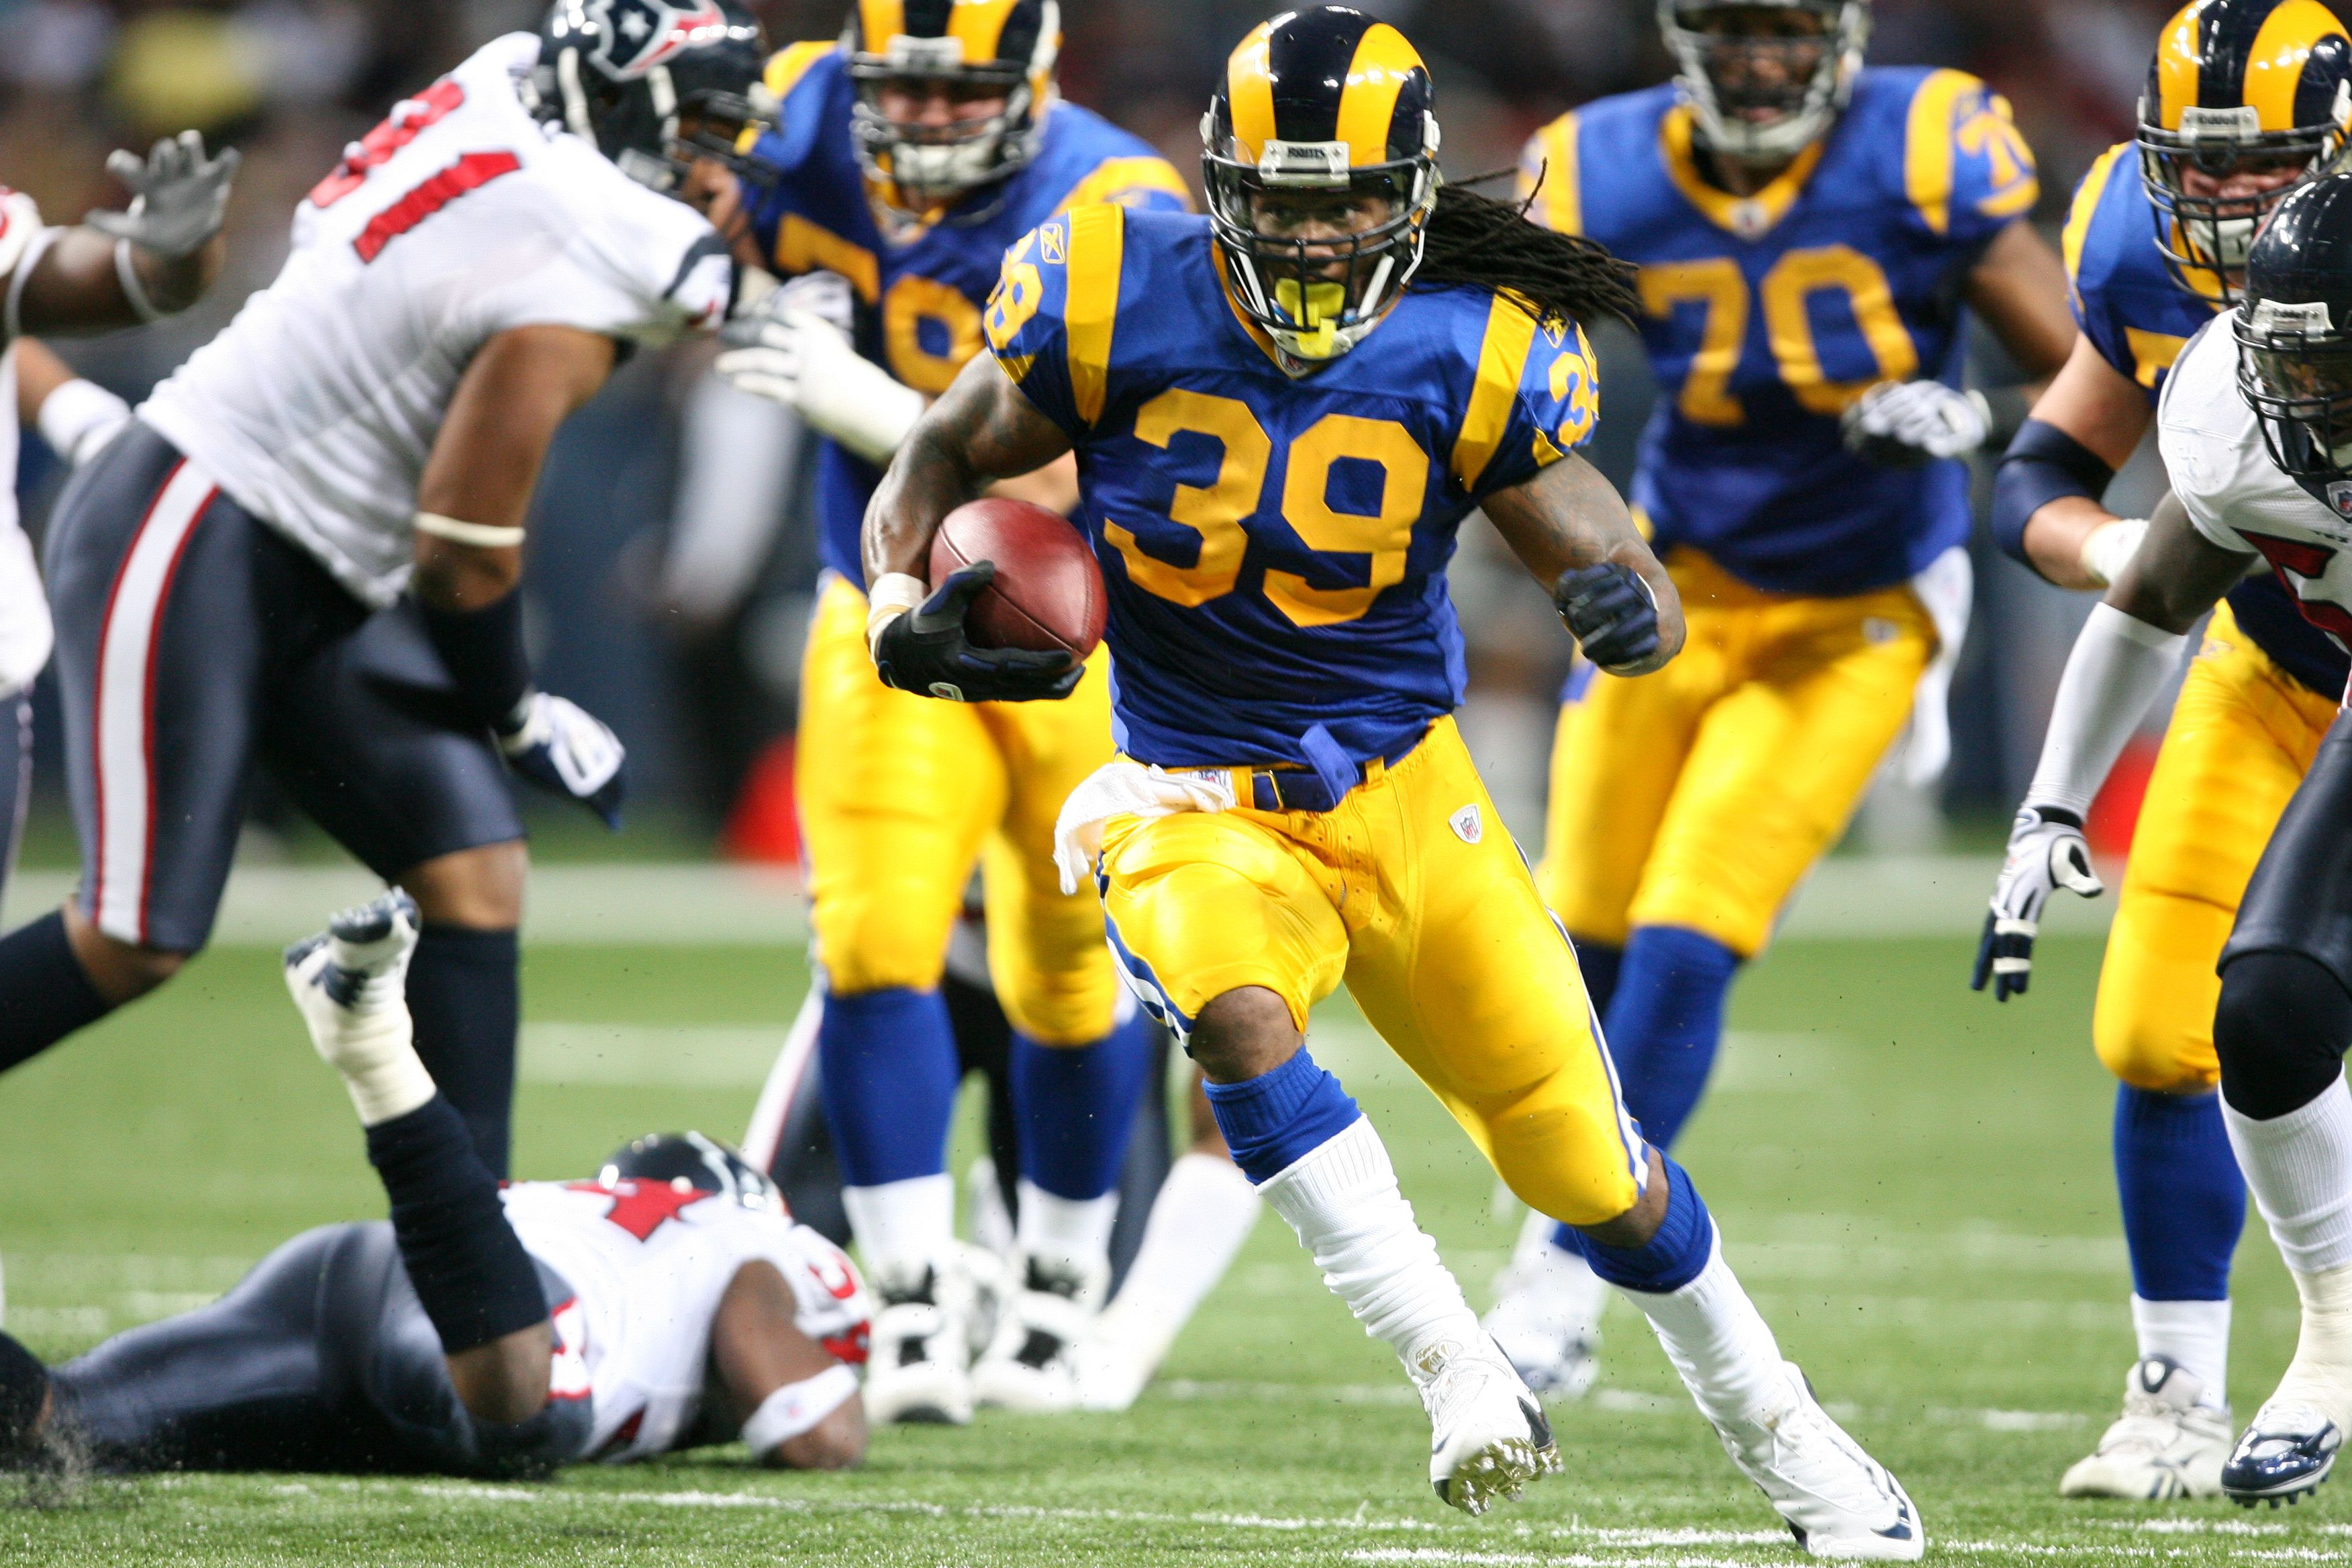 Steven Jackson Rams football, St louis rams, Dynasty